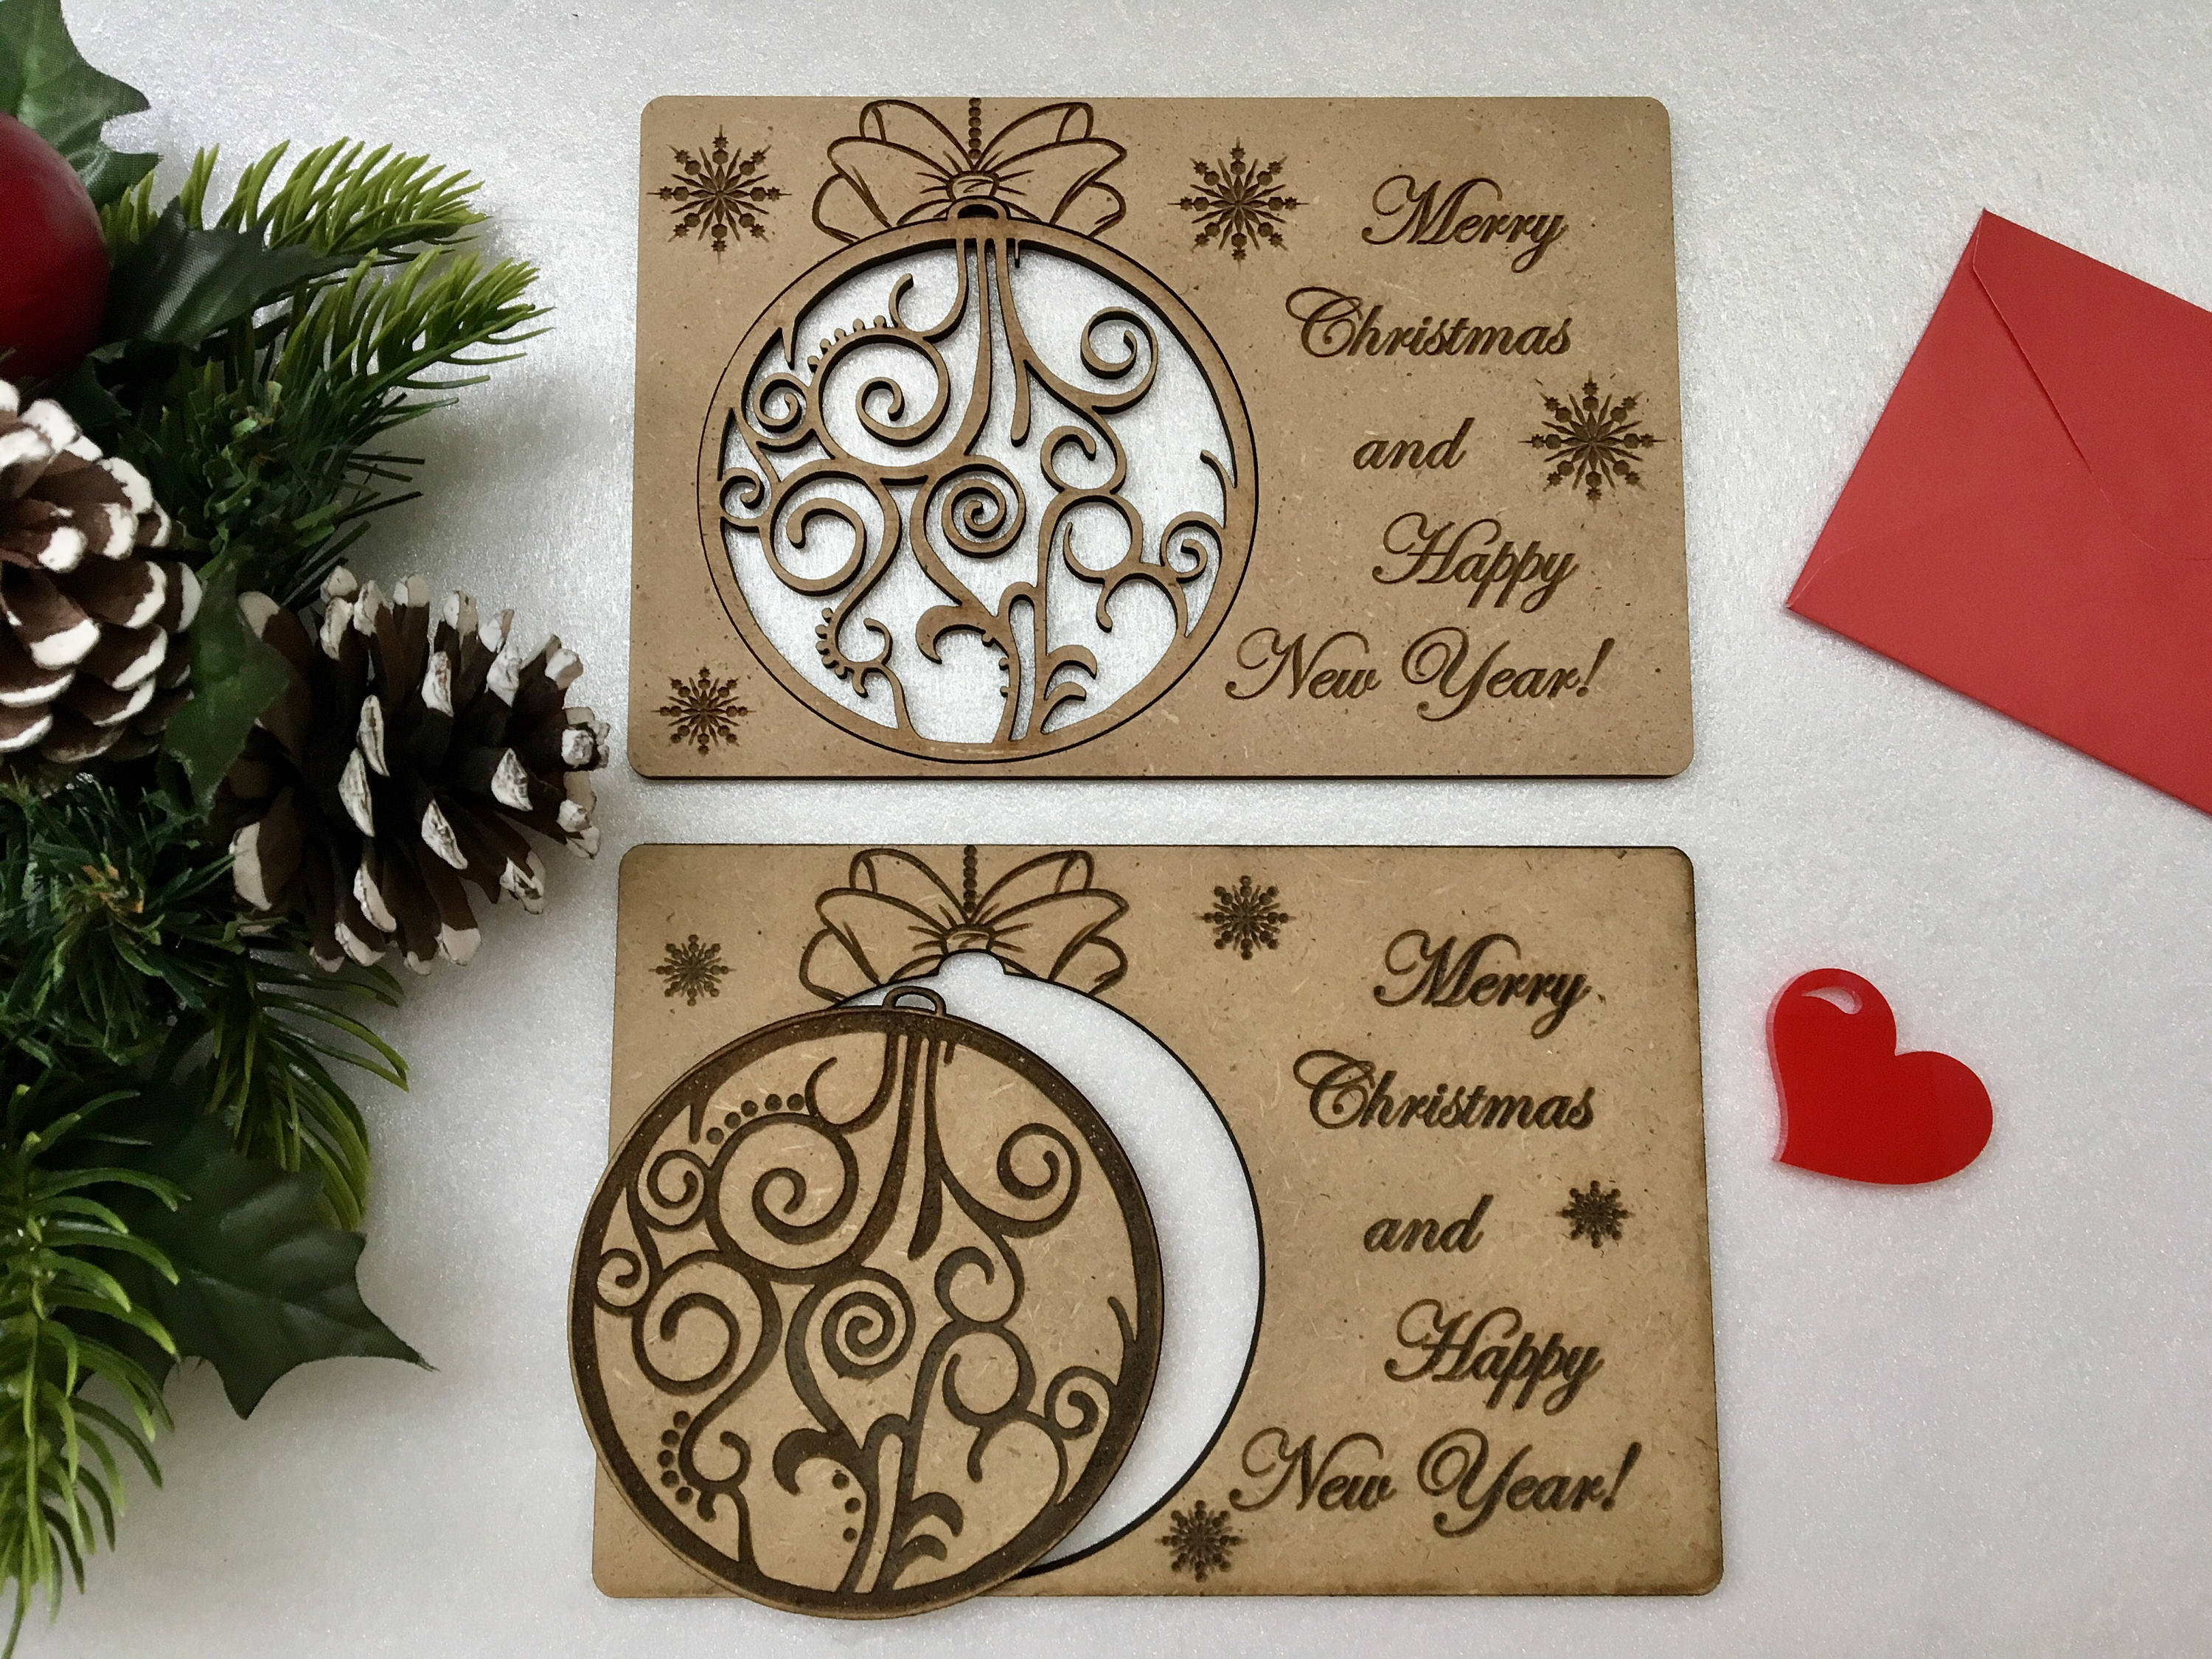 Merry Christmas Cards Engraved Xmas Ornaments Personalized Wooden